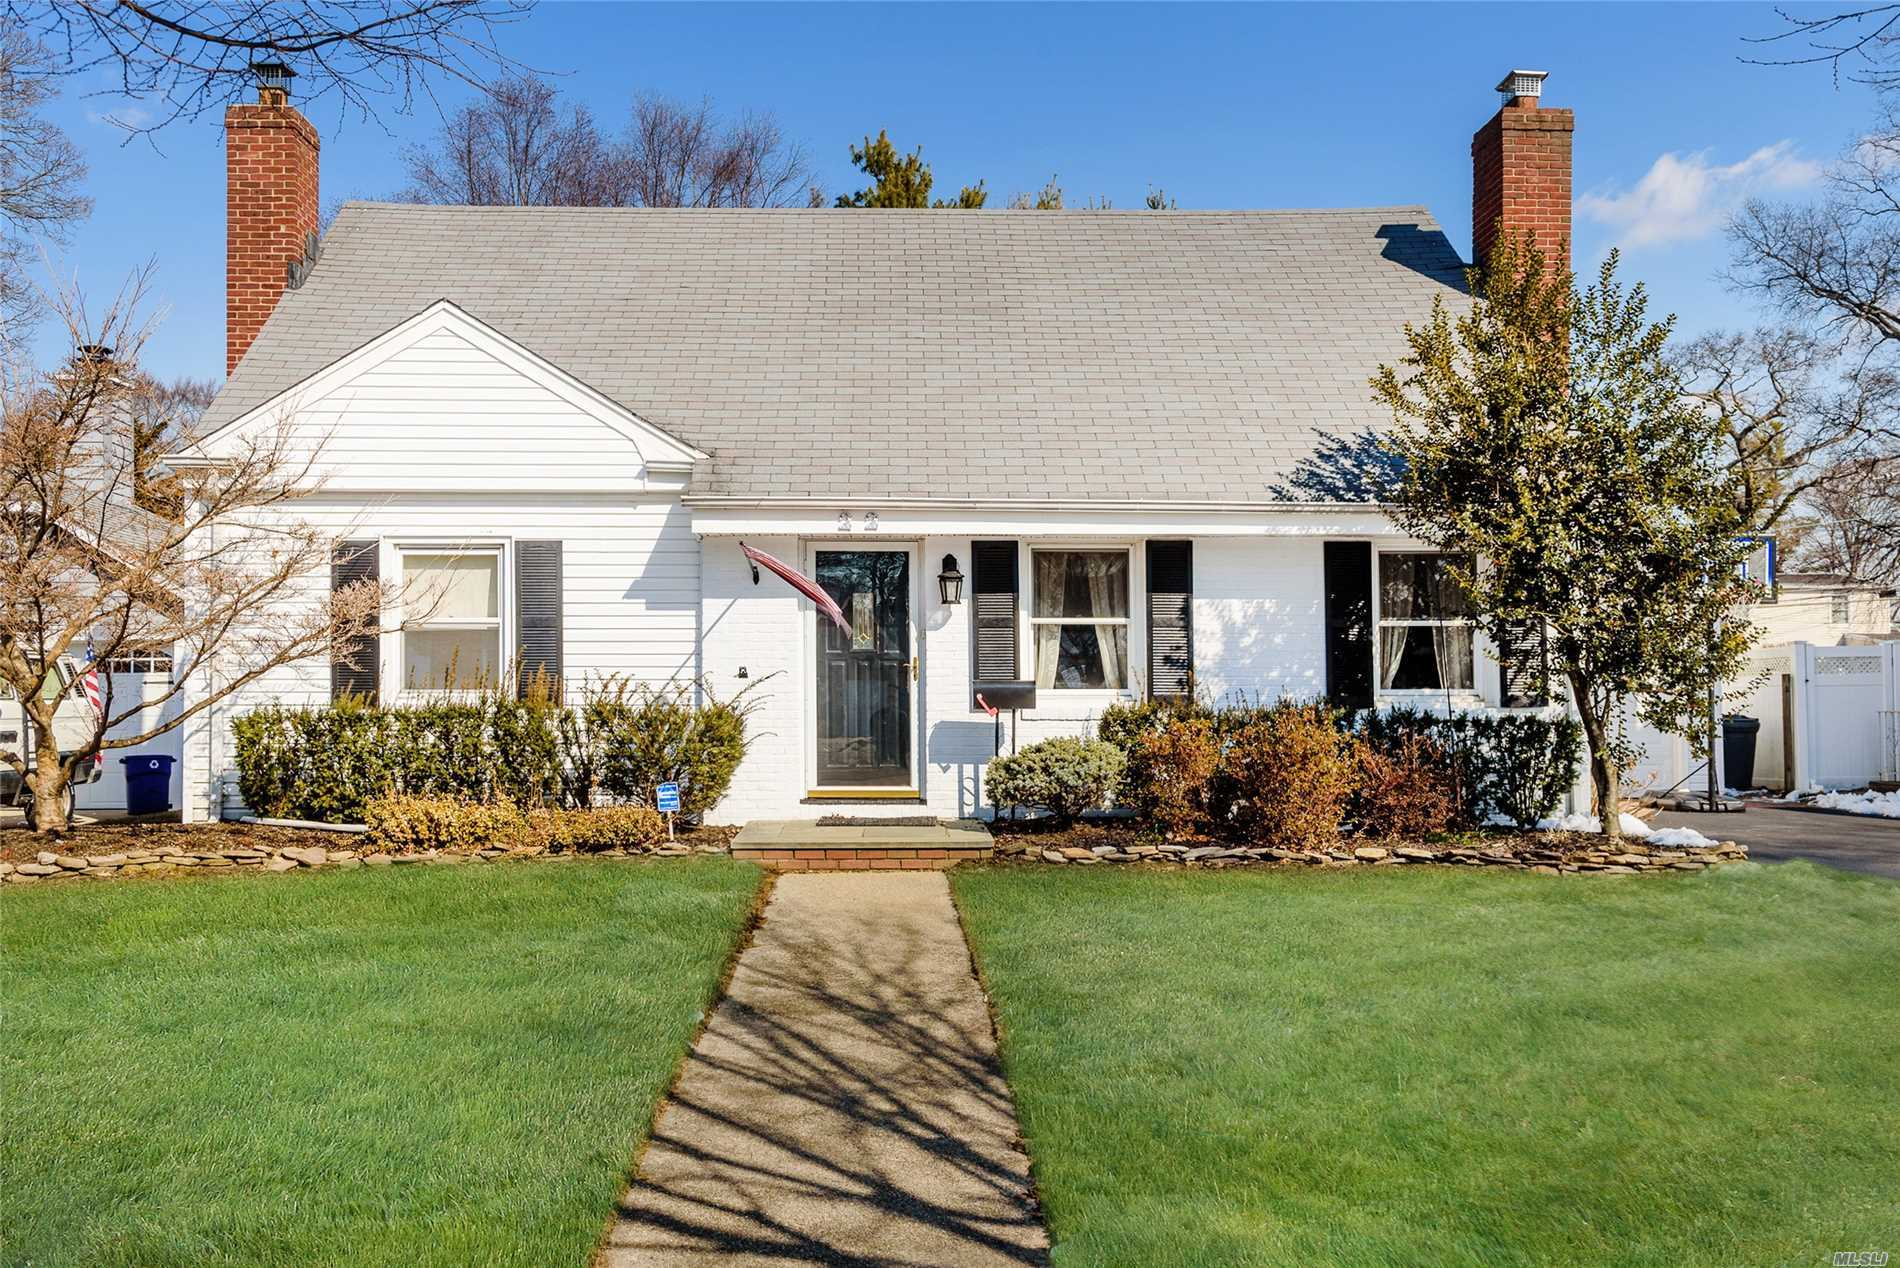 Large Expanded Briarcliff Cape With Many Updates. 2 Fireplaces, 1 Wood Burning, 1 Gas, Huge Custom Eik Overlooking Large Den With Sliders Into Yard With Trex Deck. Hardwood Floors Thru Out, New Washer, Dryer. Updated Windows, 1 Car Garage With Loft For Storage. Surround Sound Inside And Outside. Ductless Ac Unit In Den.